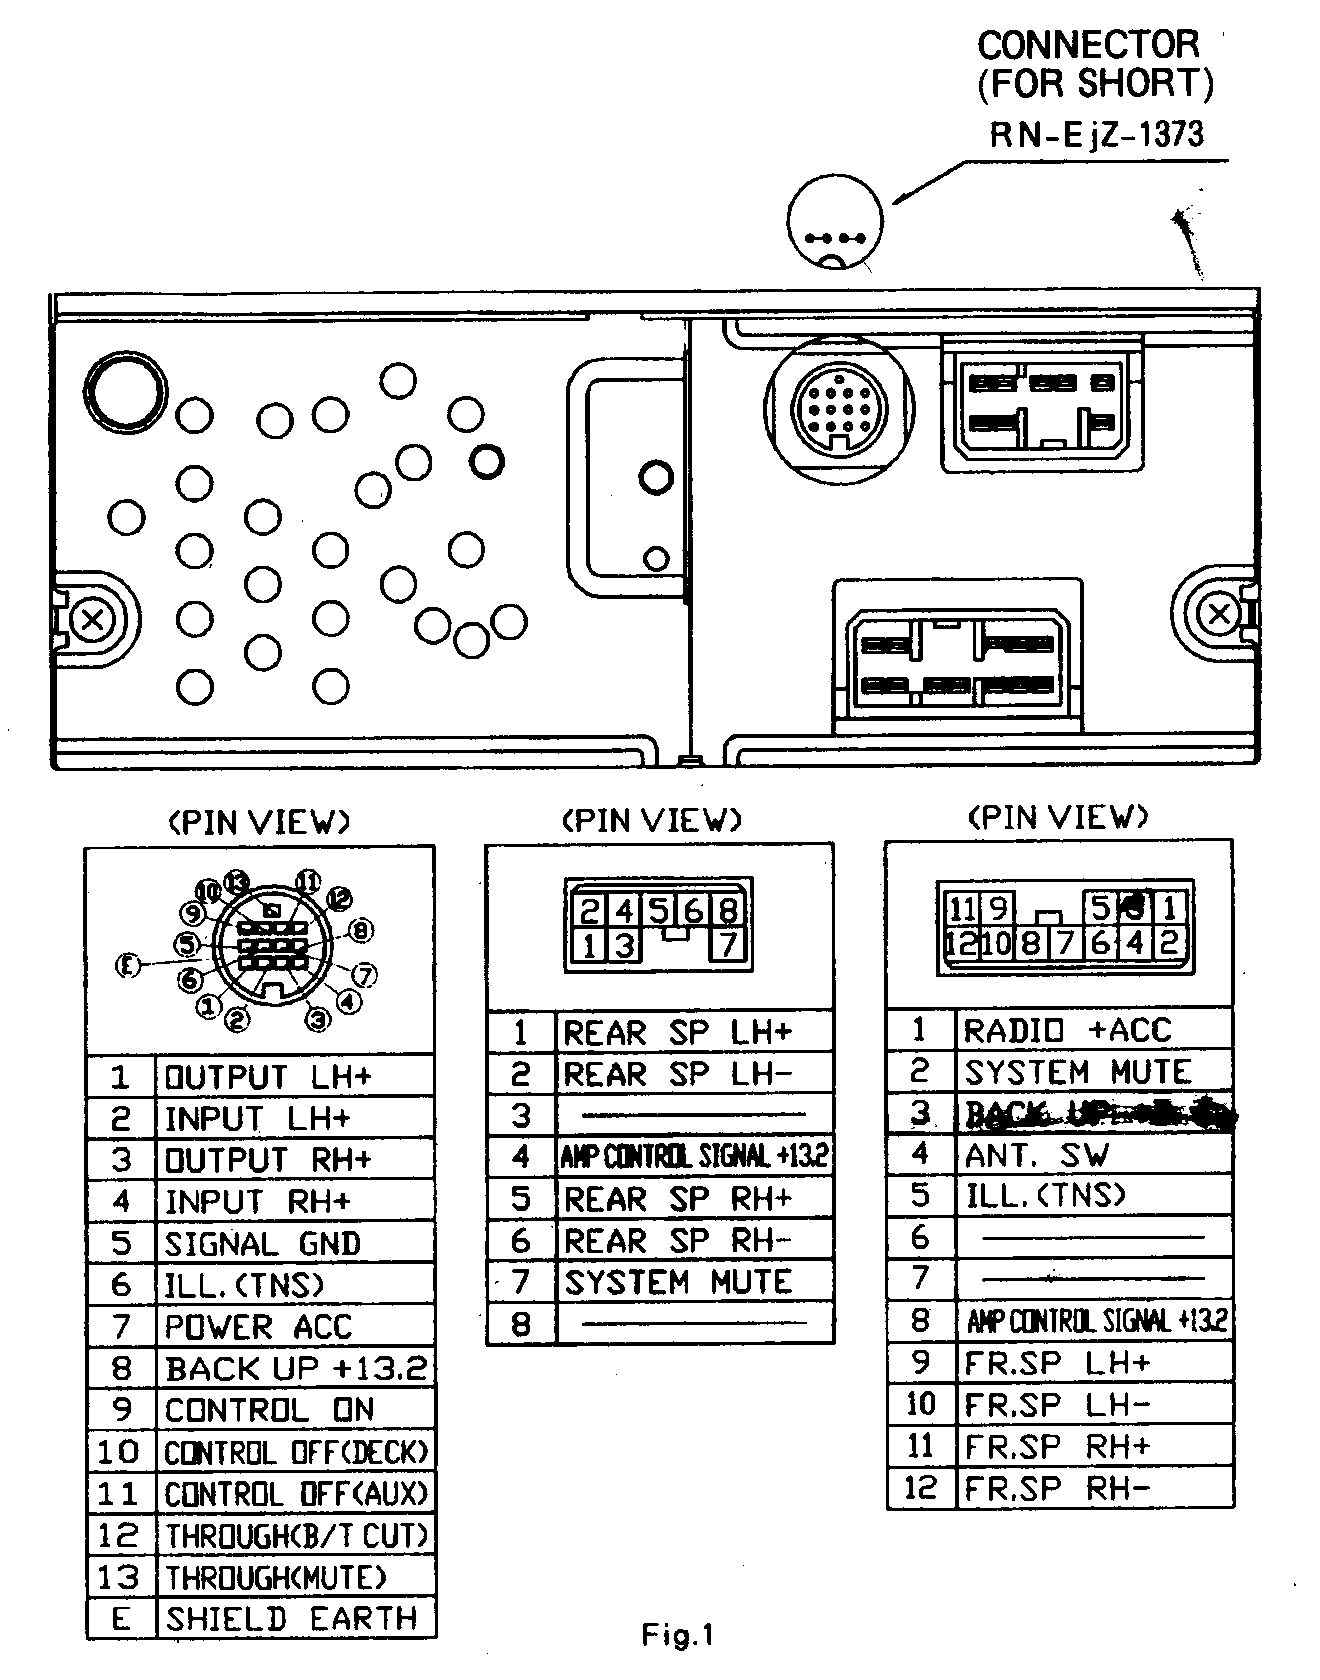 01 yukon wiring diagrams with Mazda Car Radio Wiring Connector on 2ly5y Just Purchased Salvage 03 F350 6 0 The Dome Lights likewise 153324 2014 Parts Diagrams Service Manual together with Discussion C3276 ds553922 additionally Vacuum Diagram 19478 in addition Mazda Car Radio Wiring Connector.